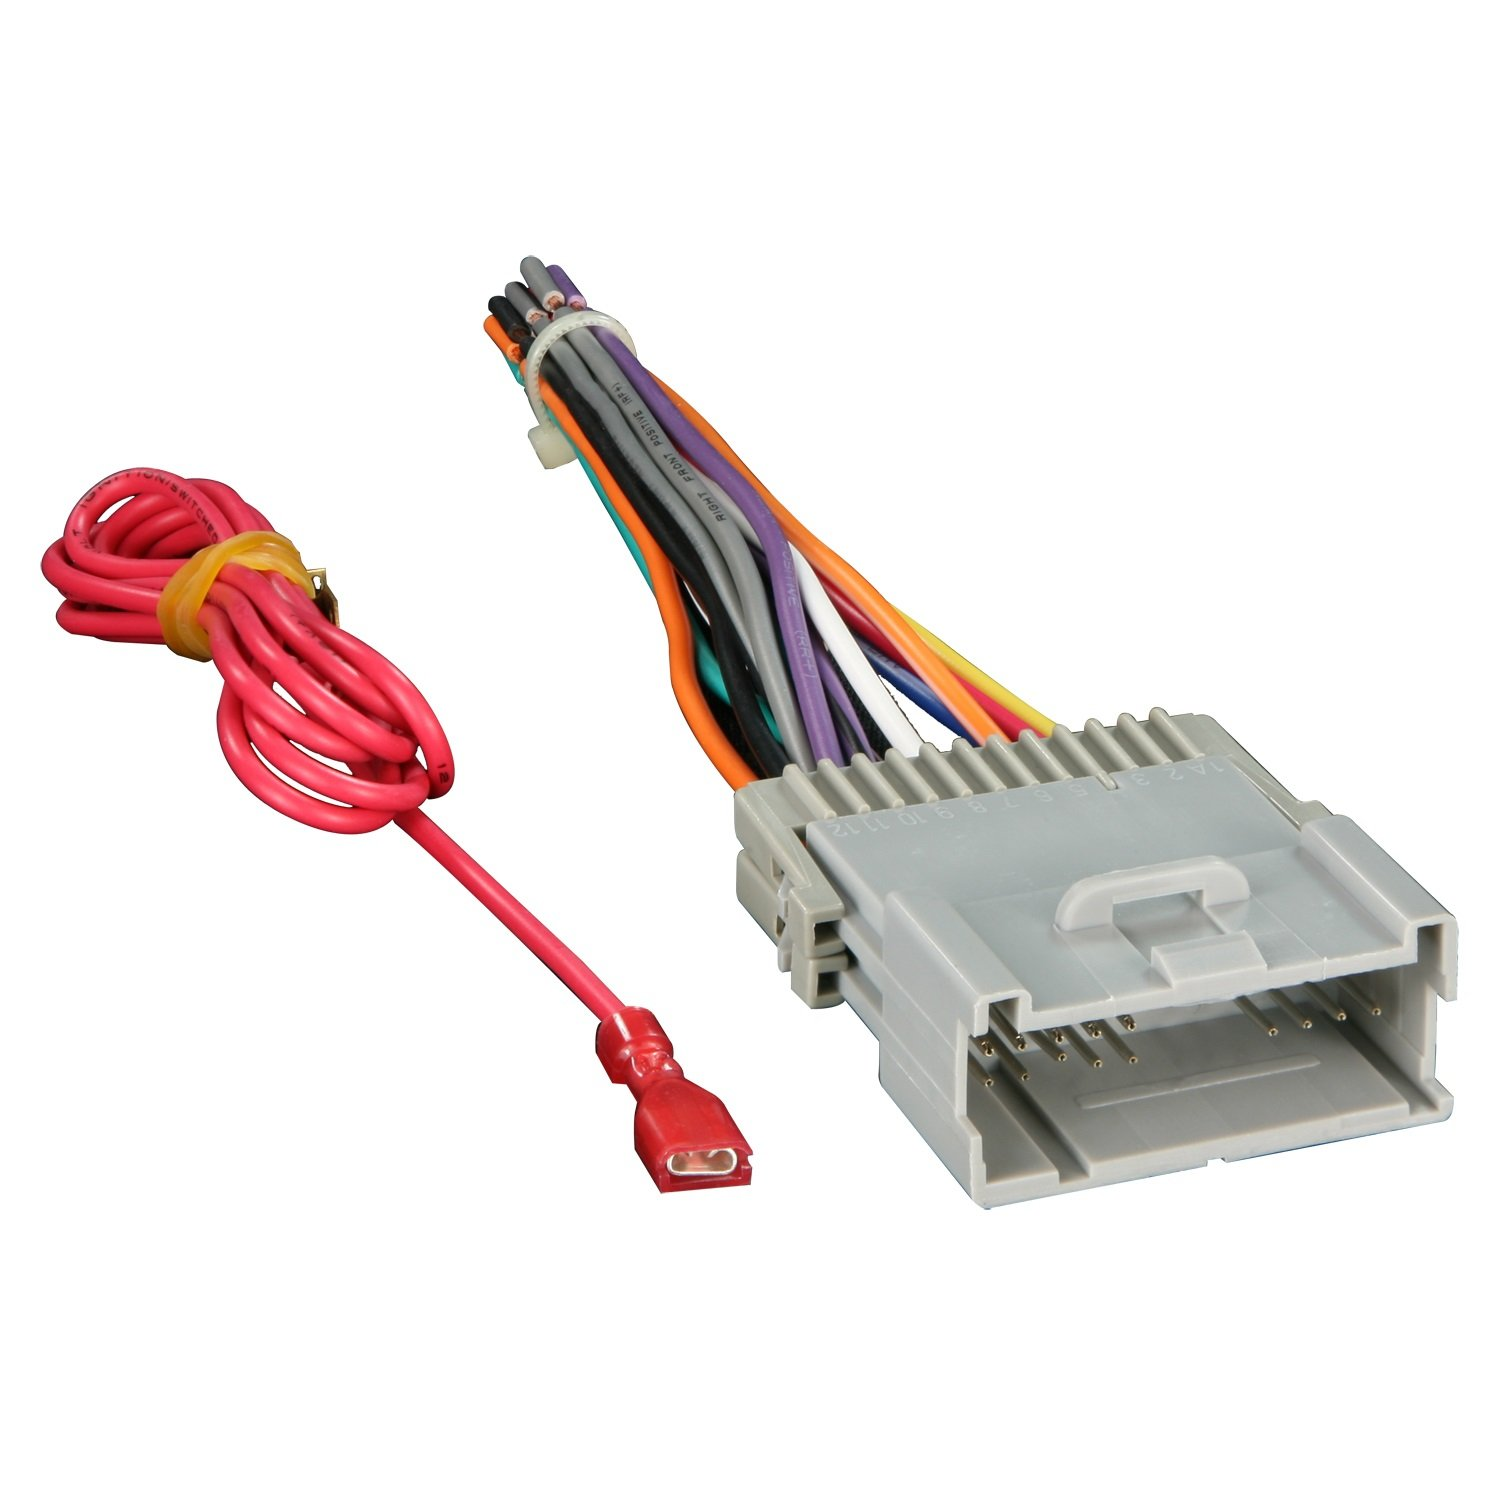 61eewxp9orL._SL1500_ amazon com metra 70 2003 radio wiring harness for gm 98 08 snap on wire harness adapter at mifinder.co